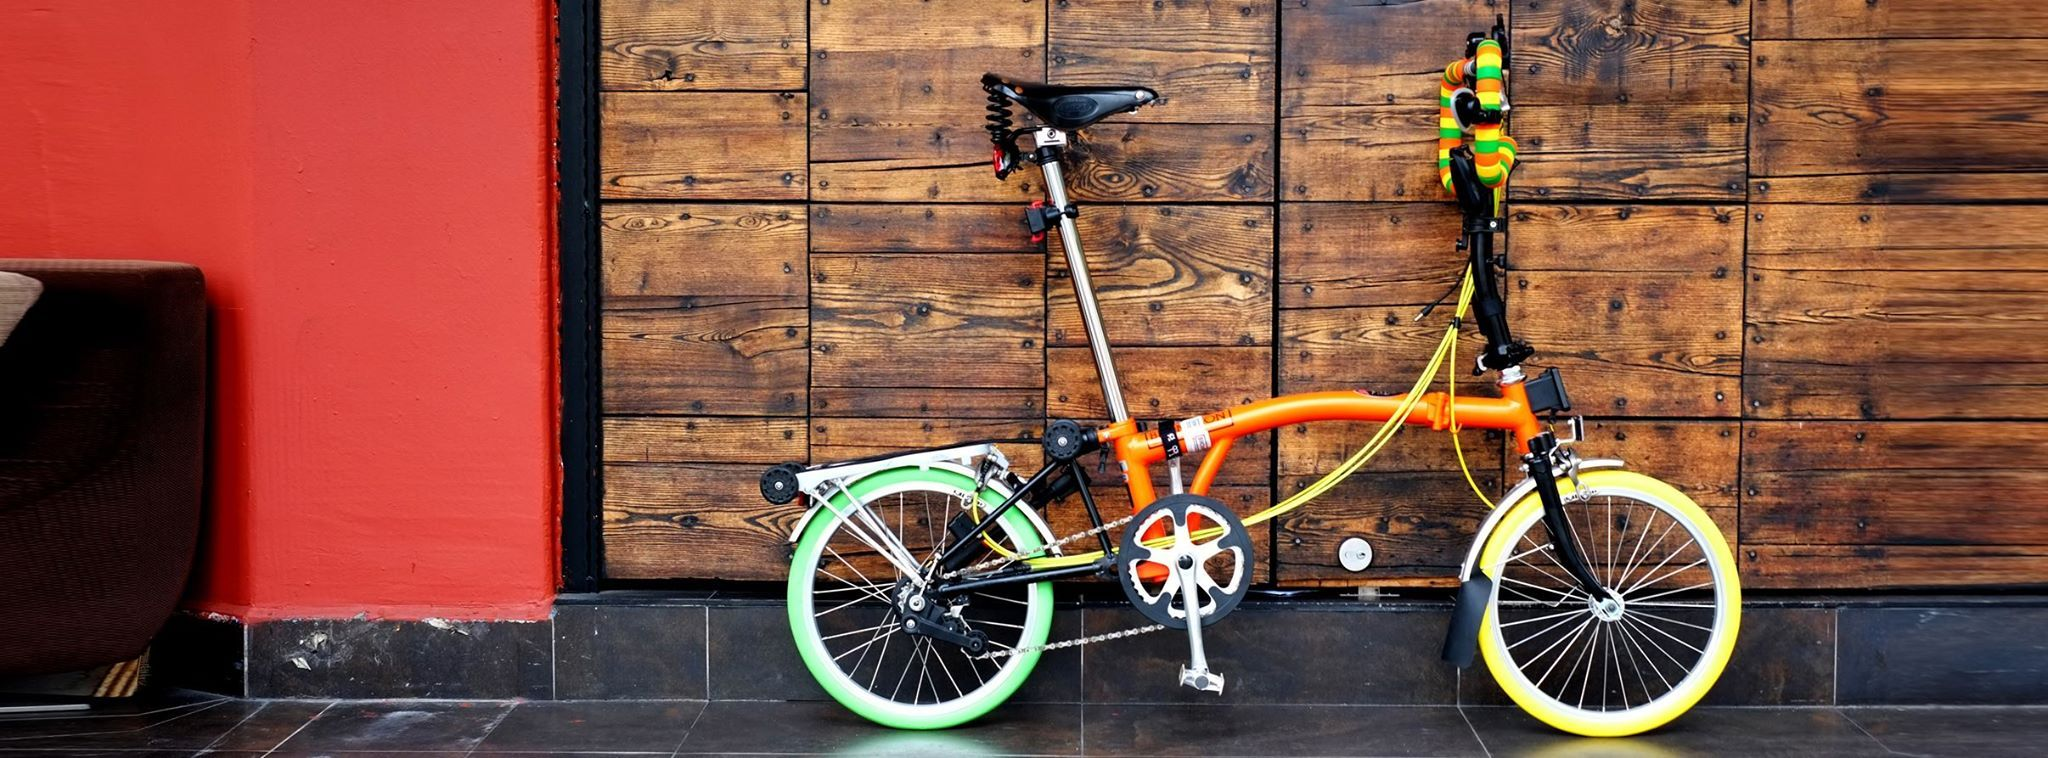 Mighty Velo Singapore S Only Folding Mighty Velo Singapore S Only Folding Bike Specialists Facebook Brompton Strida Bicycle